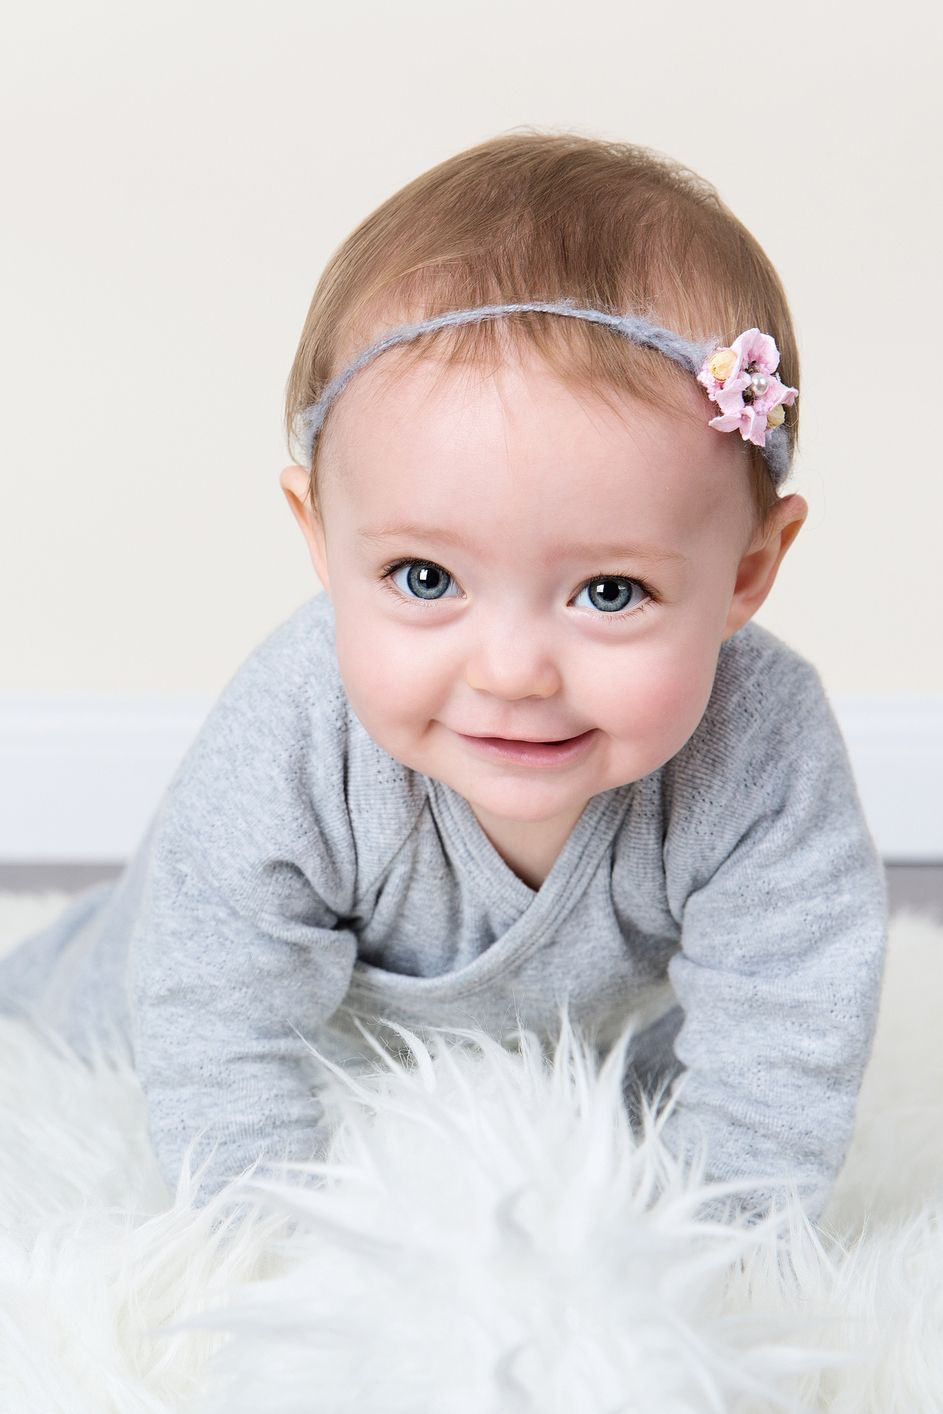 10 Unique Girl Names For Your Baby   Unique Baby Name Ideas